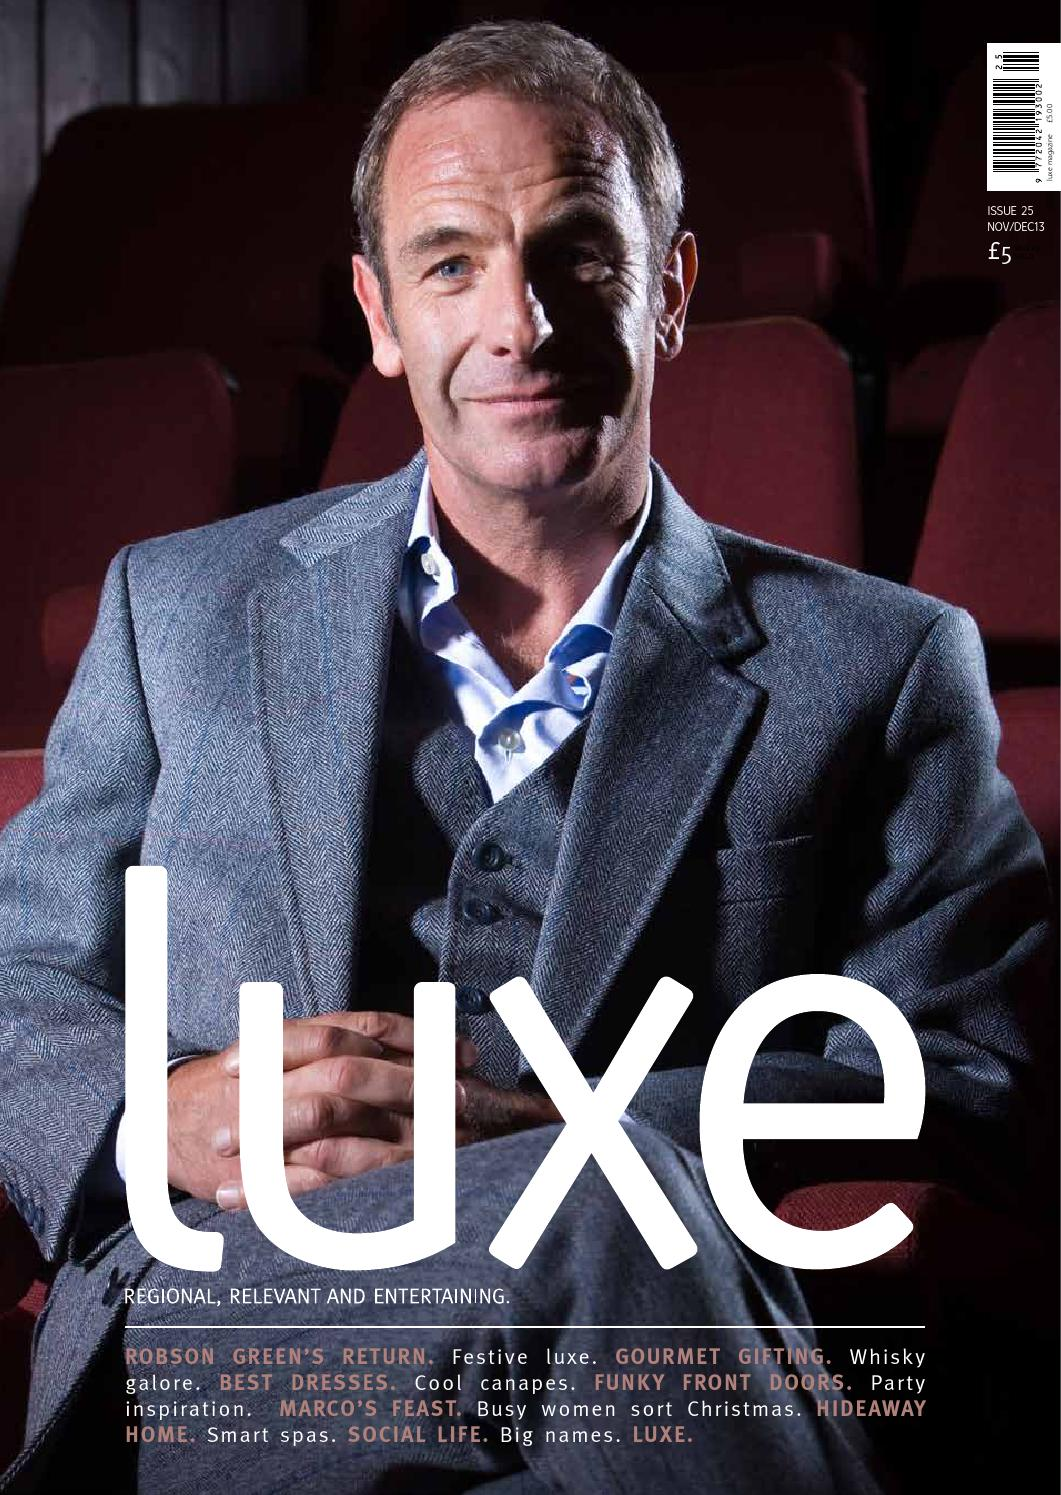 Luxe nov dec 2013 by Remember Media limited - issuu 16e56d2fb